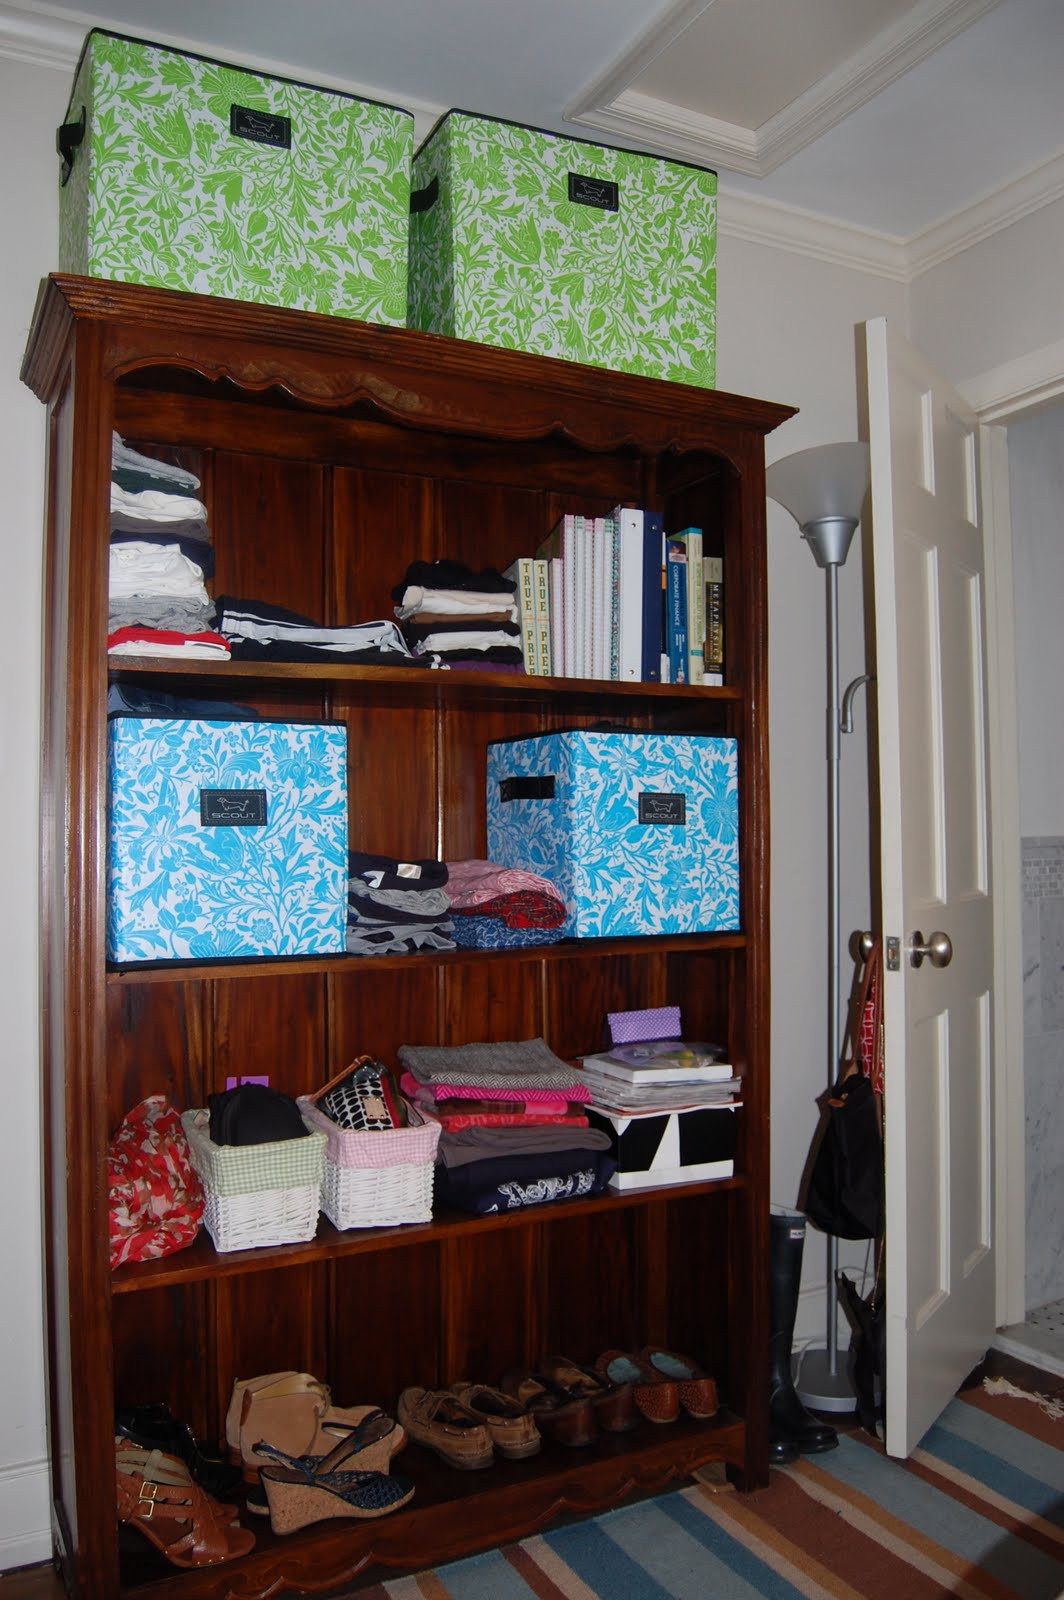 Dorm Room organization organize Please Dorm Room Carly the Prepster